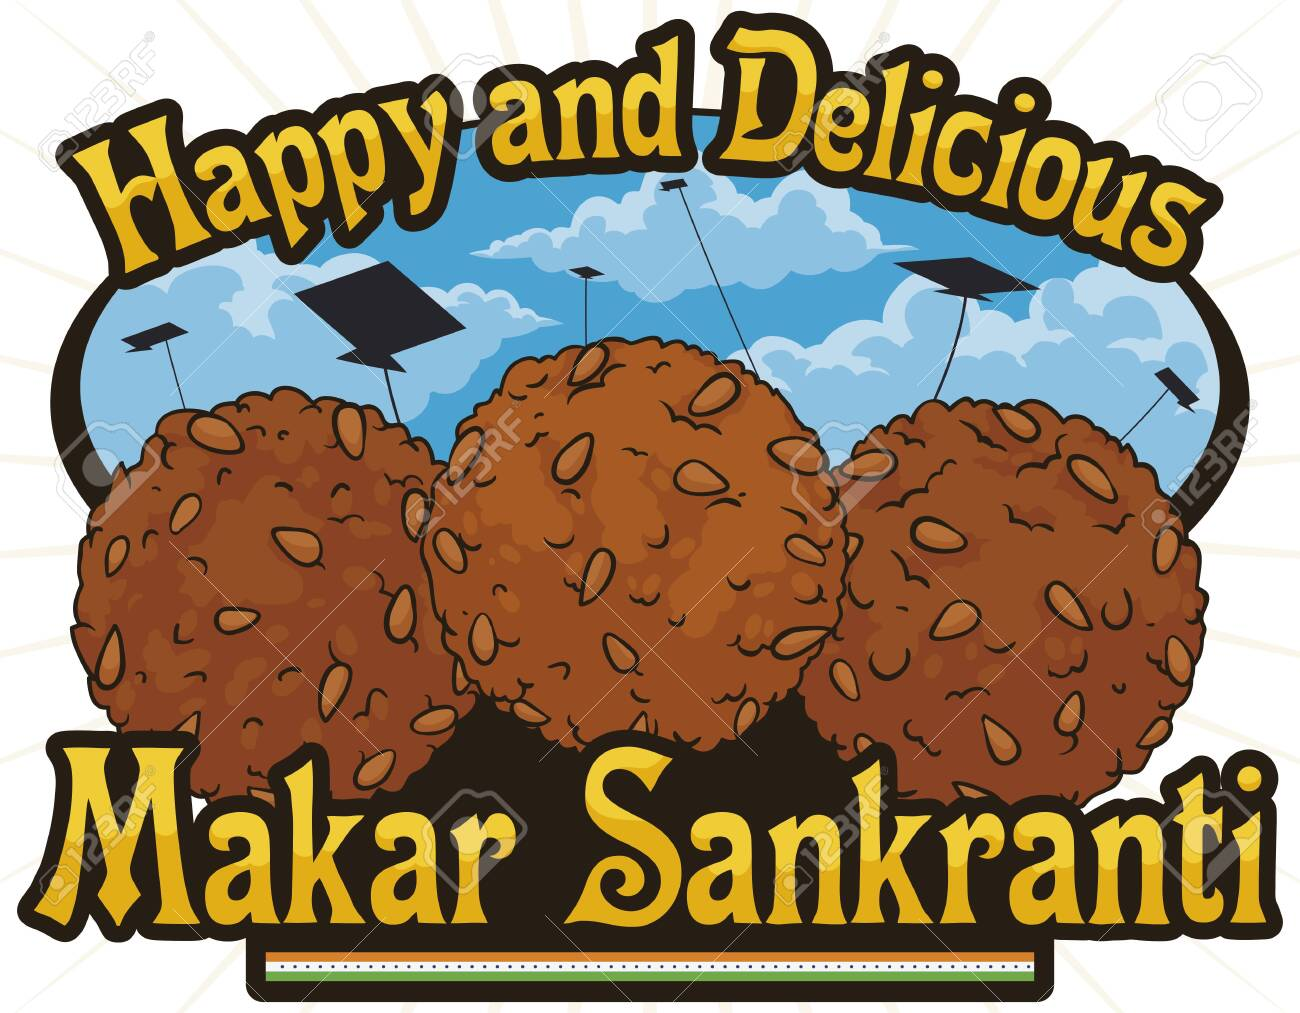 Delicious til laddus (or laddoo: a spherical dessert covered with sesame seeds) and a beautiful view of a sky with kites silhouettes during Makar Sankranti celebration in India. - 154332096